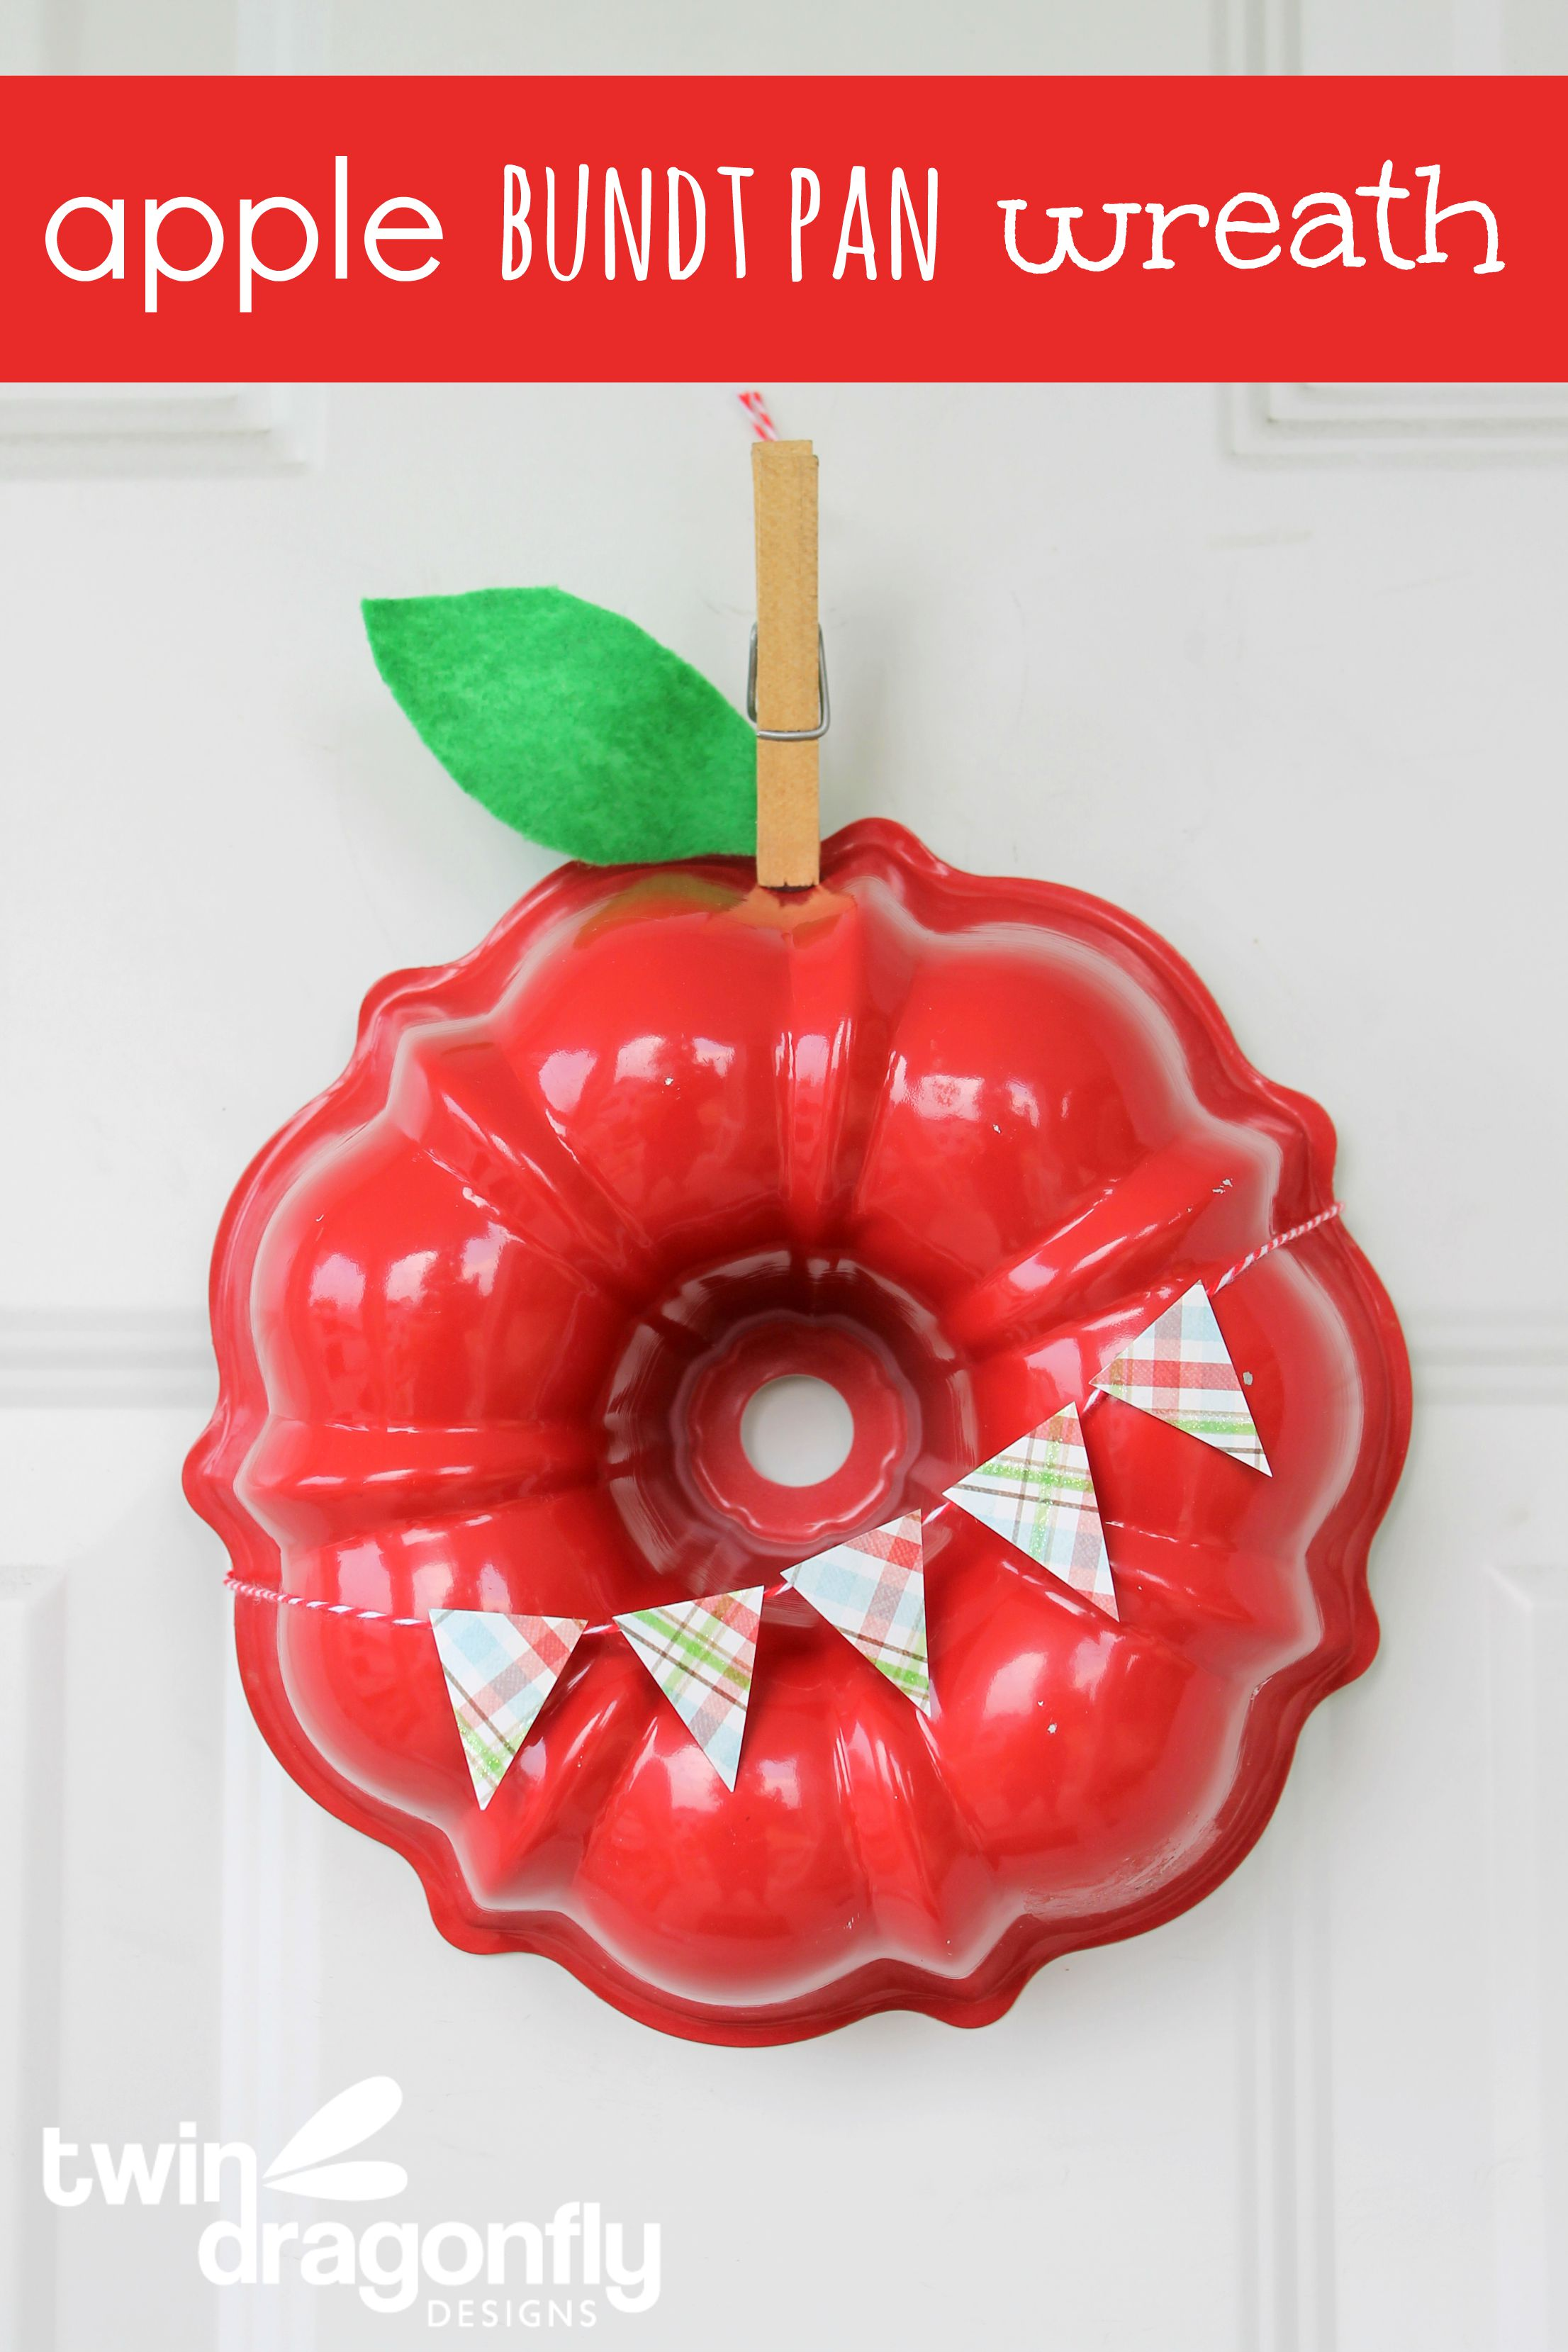 Apple Bundt Pan Wreath